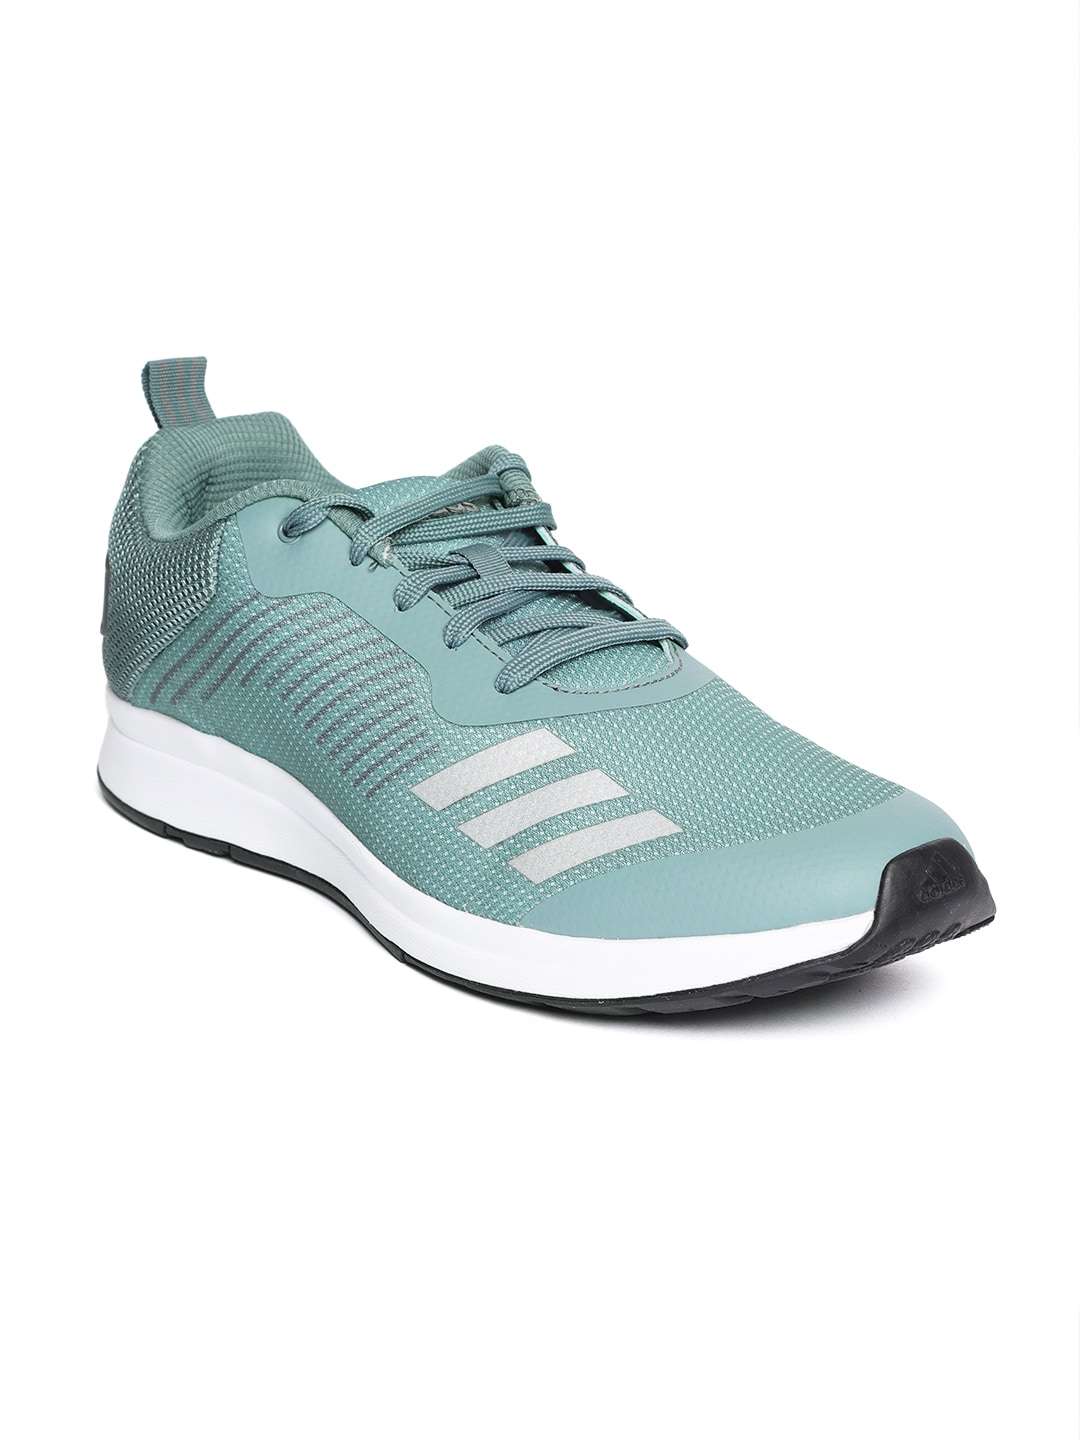 7acd4c296a088 adidas - Exclusive adidas Online Store in India at Myntra